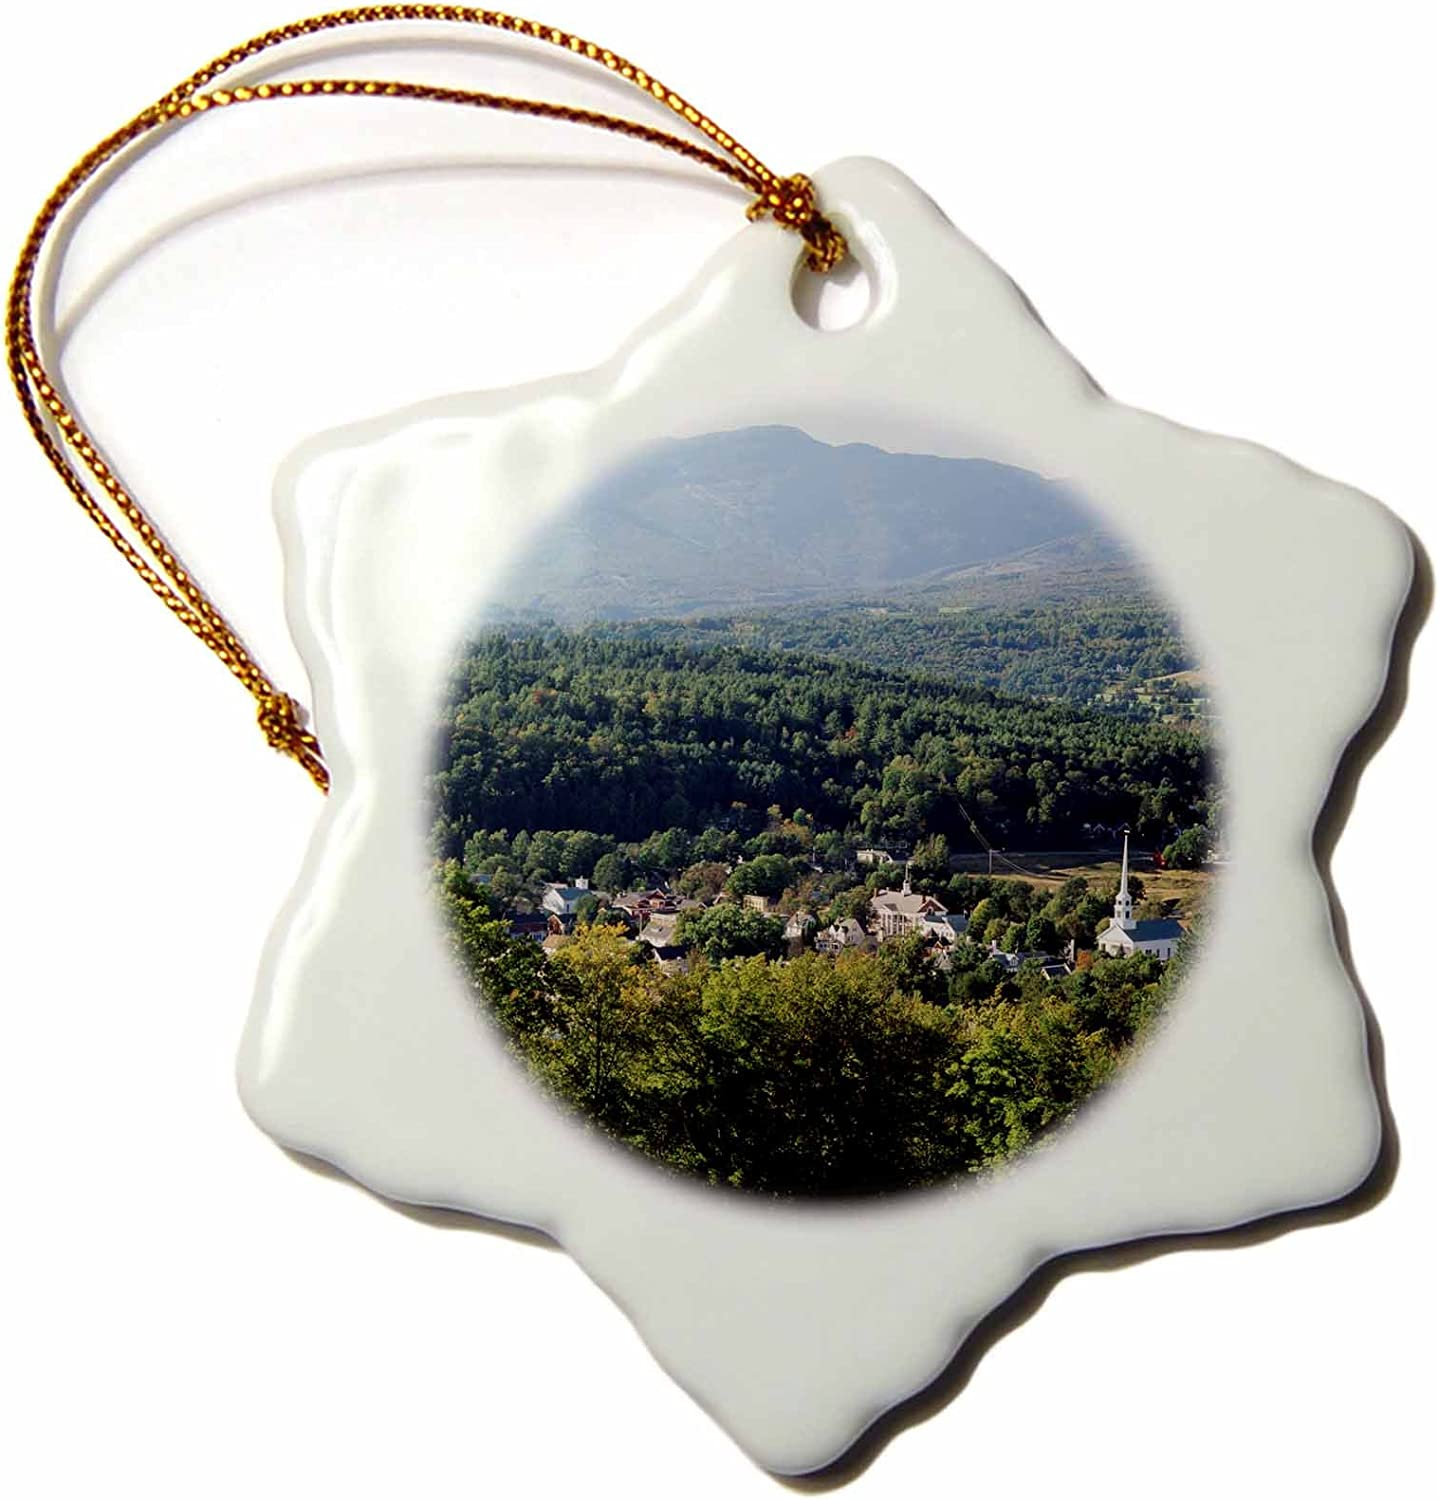 3dRose View of town with mountain, Stowe, Vermont, USA - US46 WBI0050 - Walter Bibikow - Snowflake Ornament, Porcelain, 3-inch (orn_147692_1)